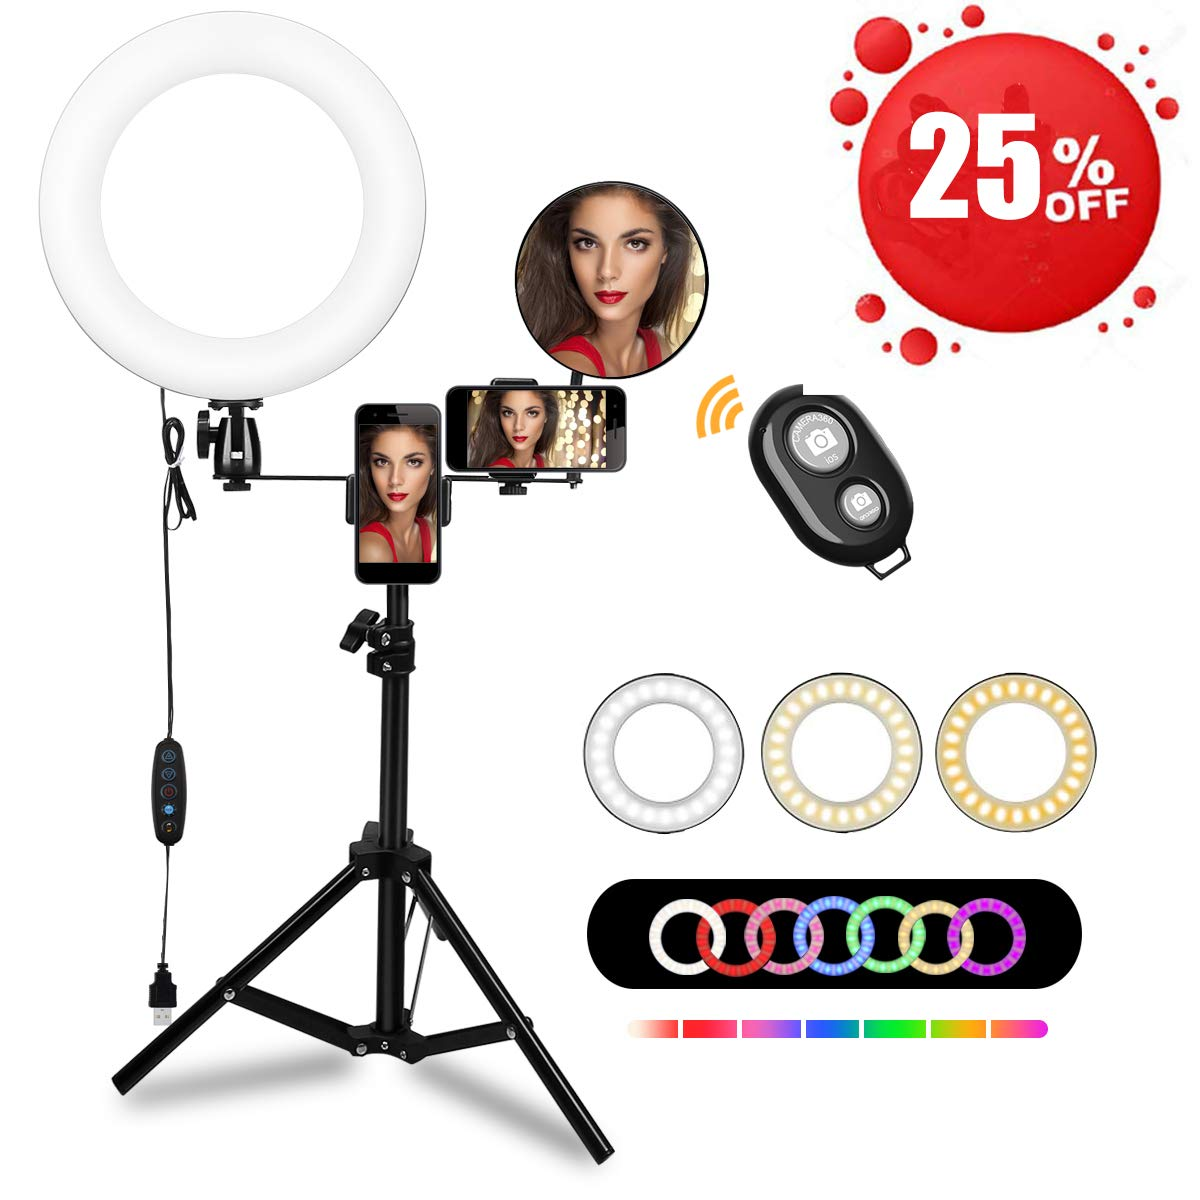 10'' Ring Light with Tripod Stand LED Selfie Ring Light with RGB& 3 Light Modes,Phone Holders,Brightness for Camera Videos Recording Photography Livestream Vlog Makeup Selfie YouTube Shooting by Keenstone